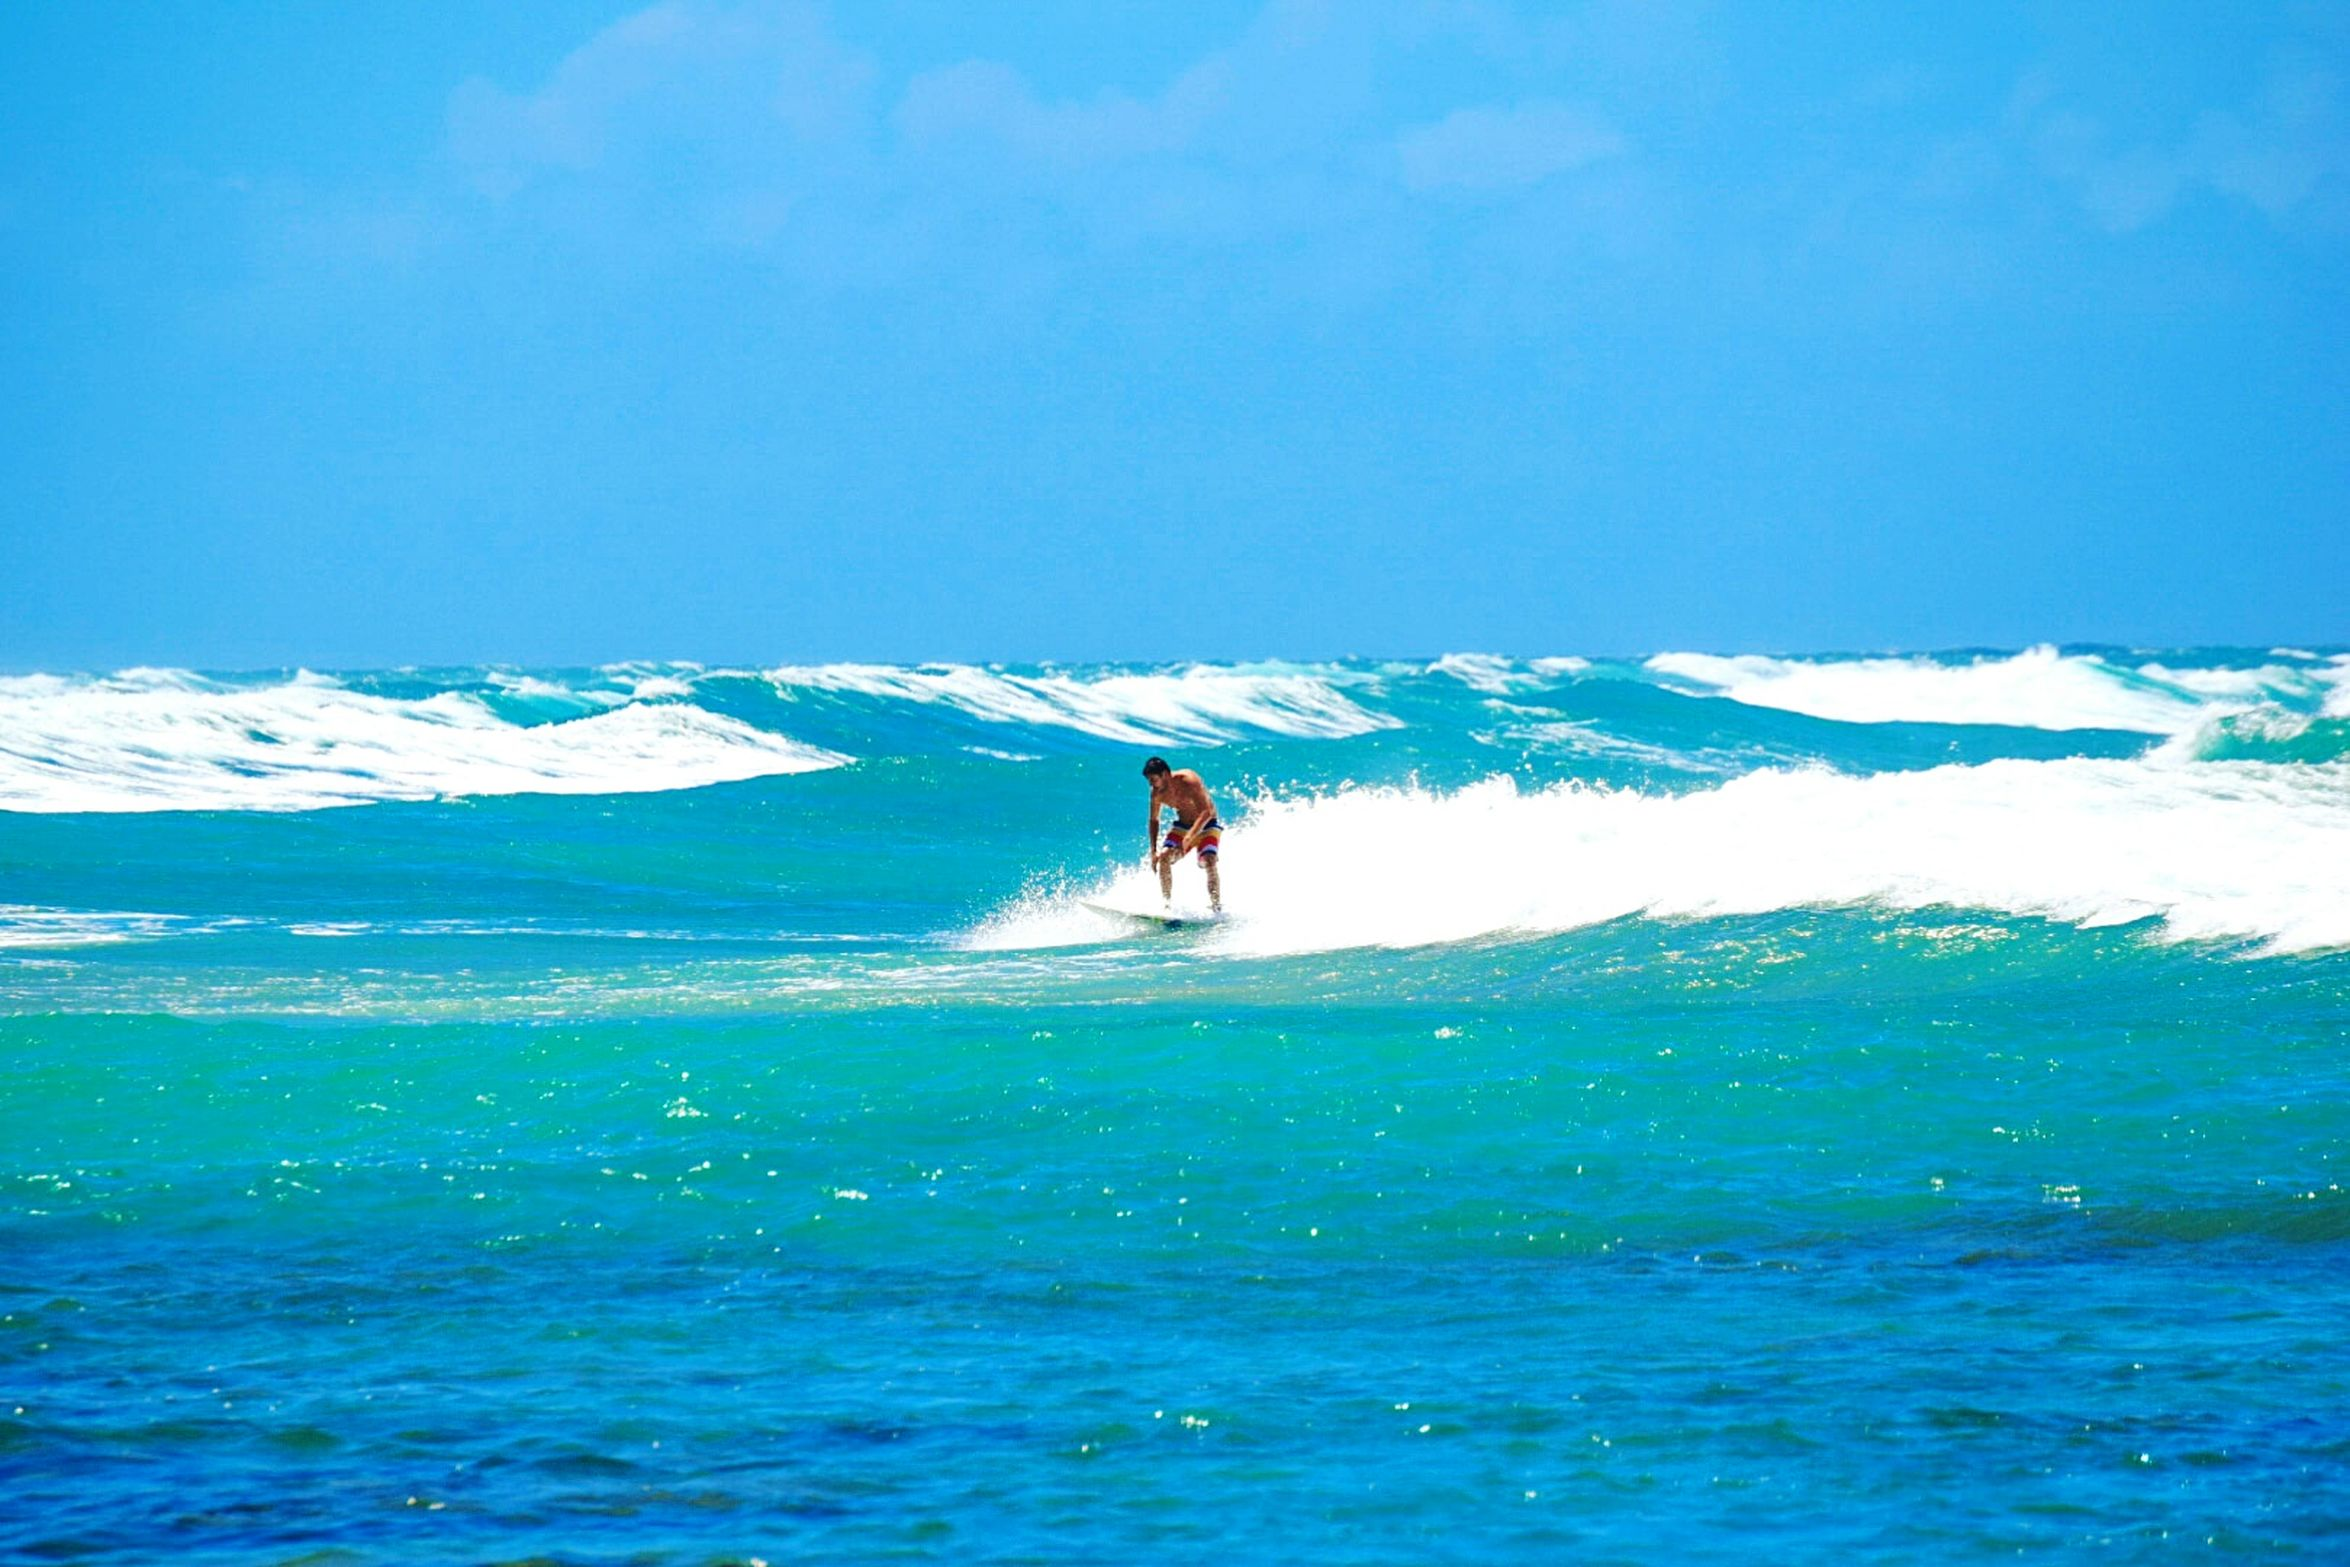 Where everything is a Blue Wave but the Whitecaps and Surfers. Sunburn Surfing Surfs Up Puerto Rico Beachphotography Beach La Playa Ocean Peace And Tranquility Blue Storm Hurricane 2015 8 Foot Waves Nikonphotography Bluesky Talent Paradise Paradise Beach Vacation Escaping